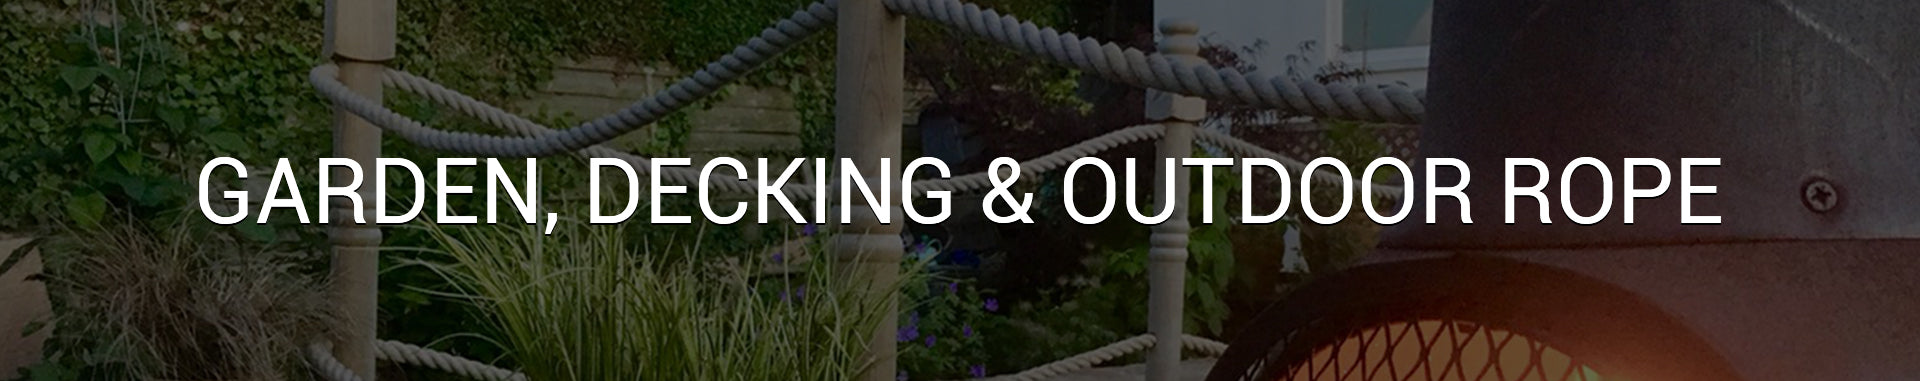 Garden, Decking & Outdoor Rope